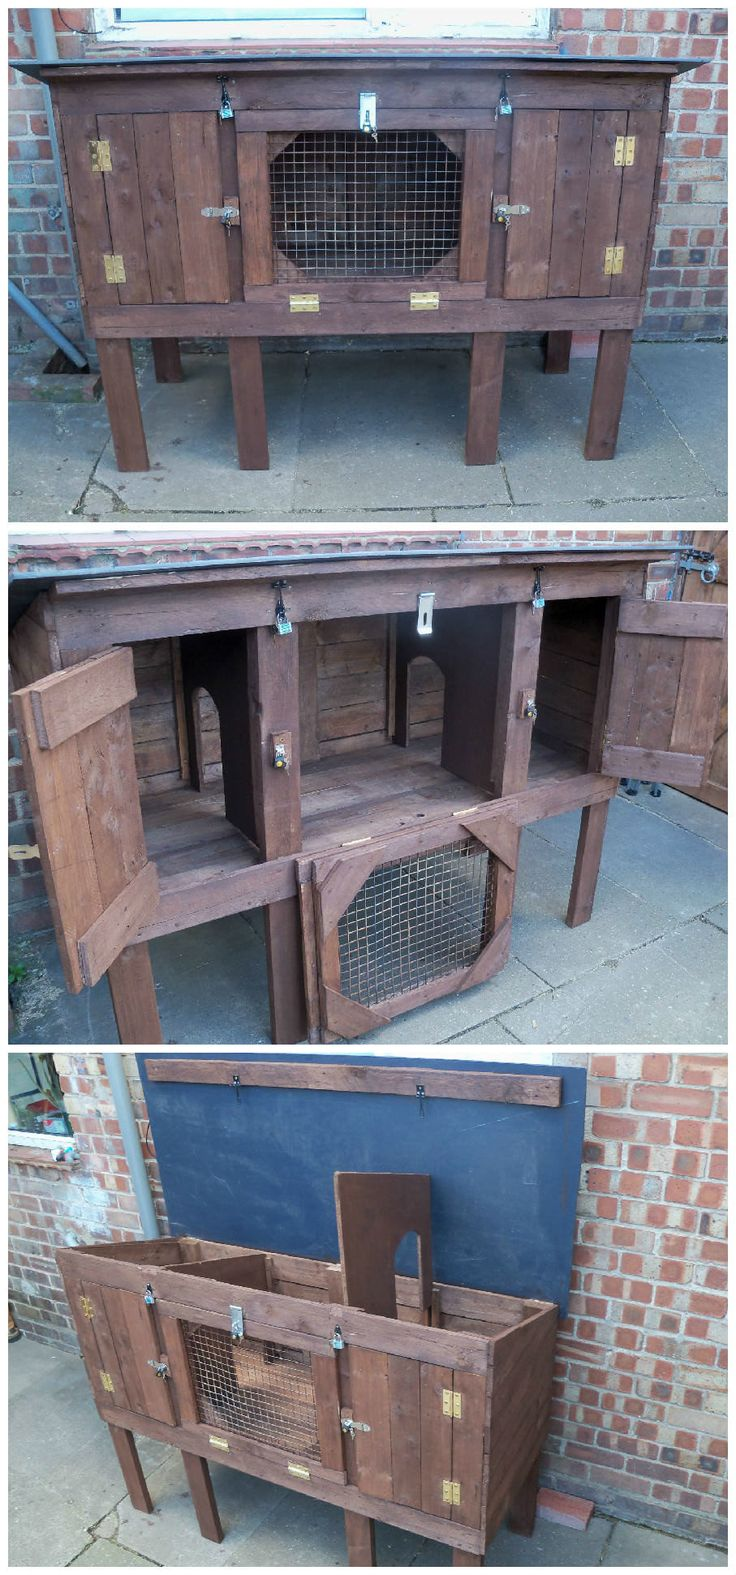 This Rabbit Hutch has a hinged roof so it can be lifted and both bedroom dividers can be removed for …